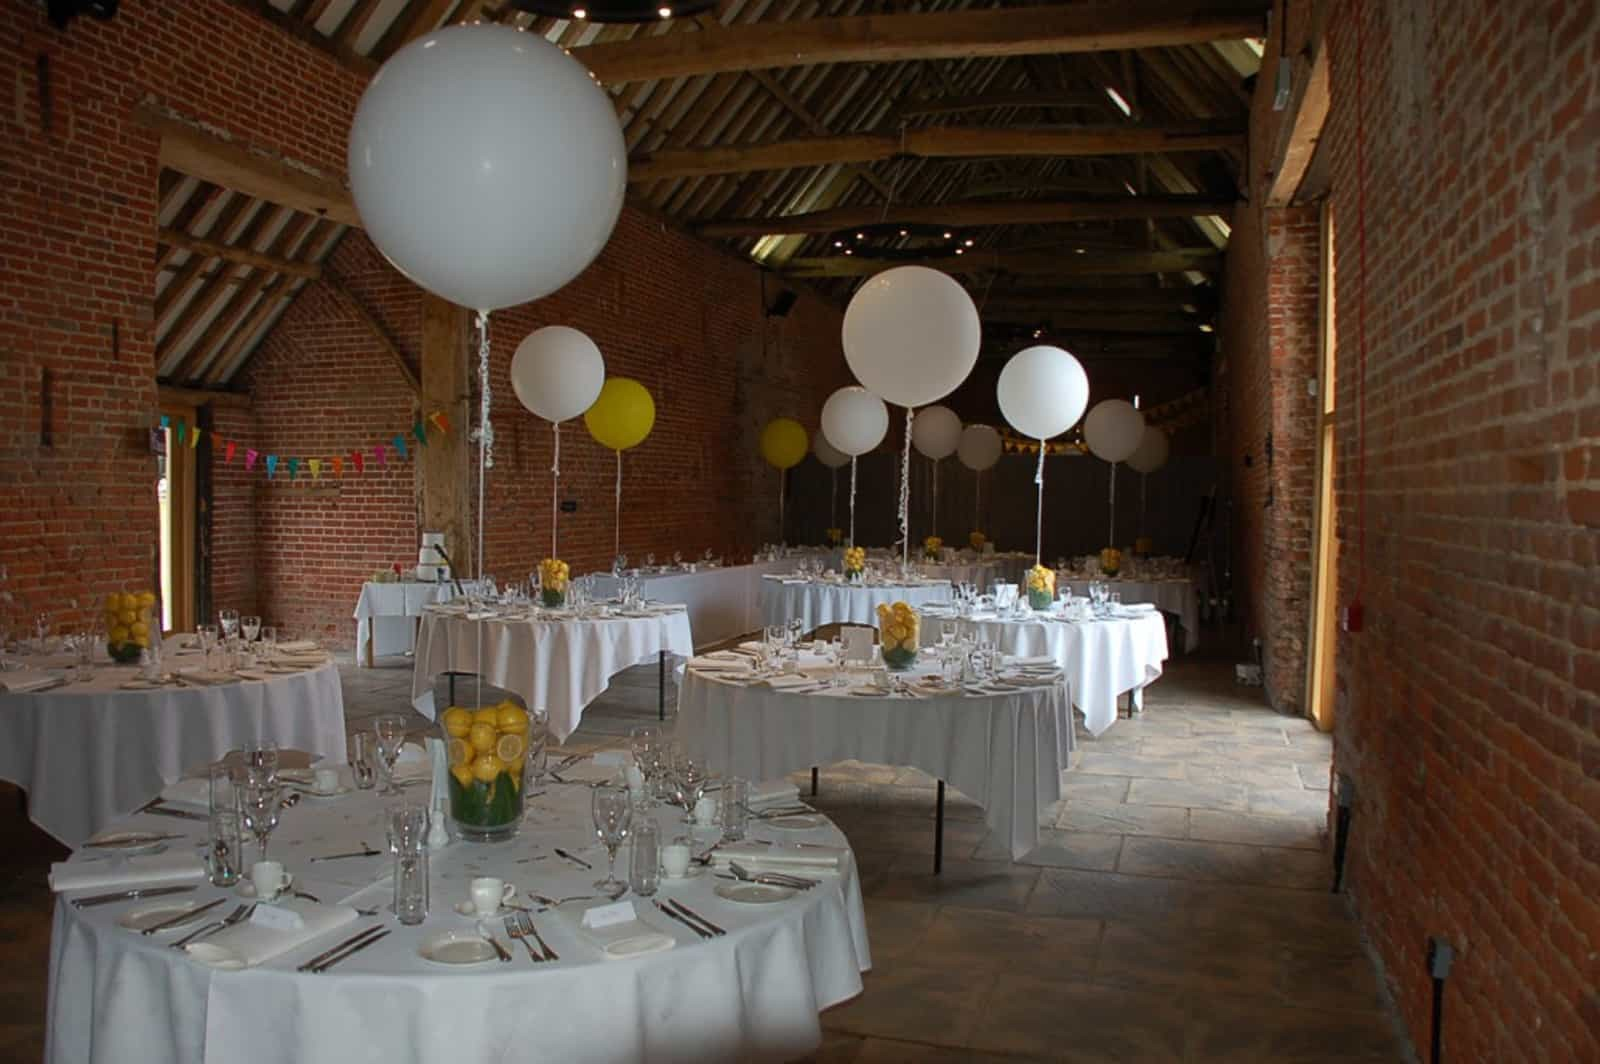 Large Balloons and Lemons themed wedding